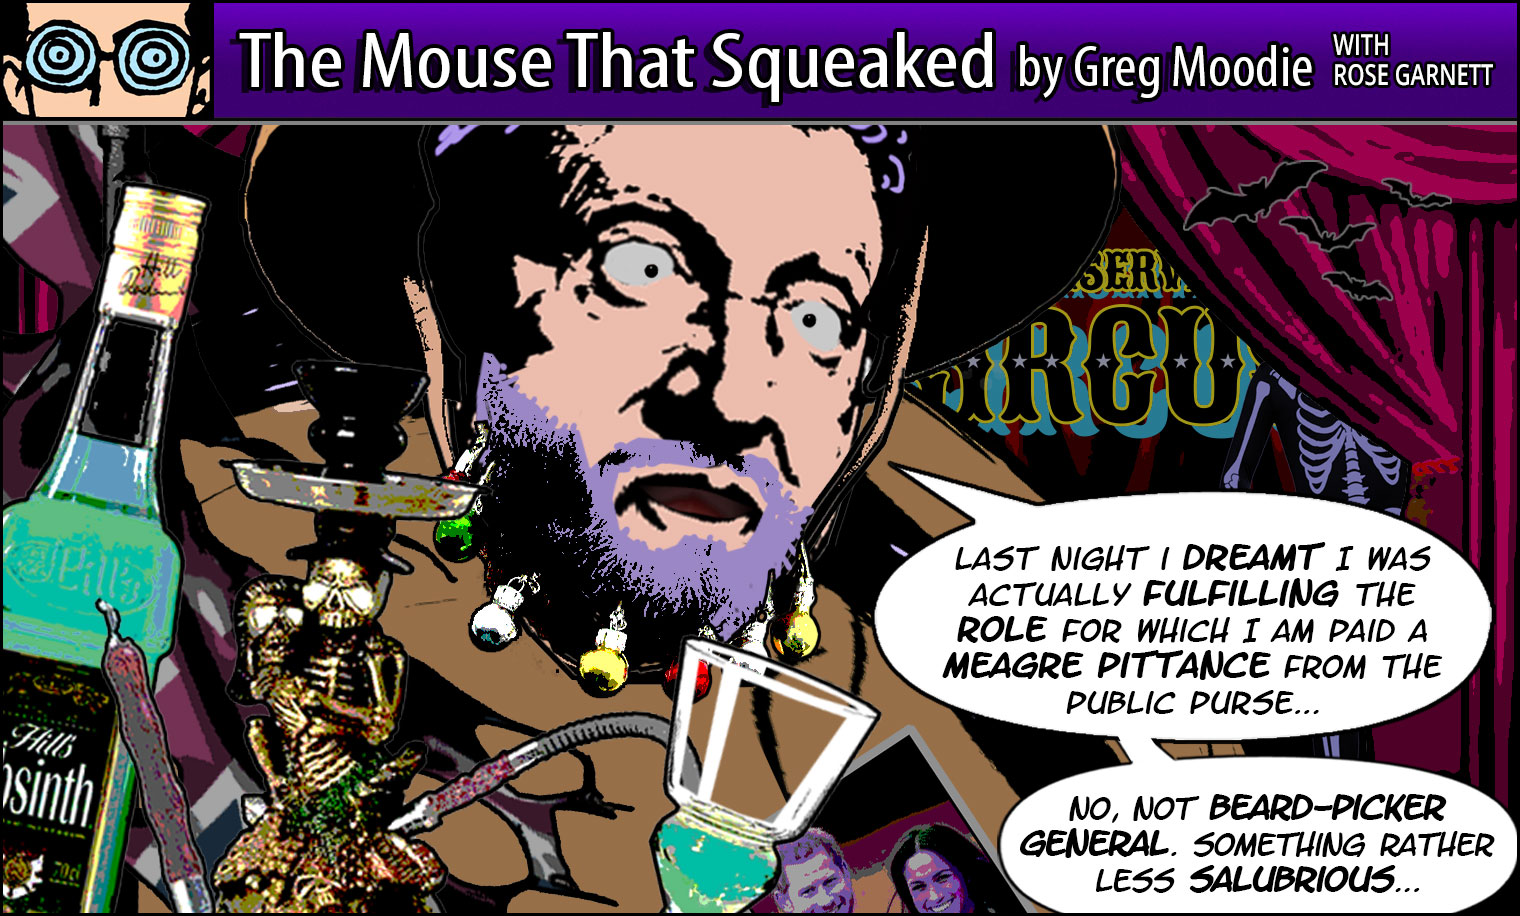 The Mouse That Squeaked